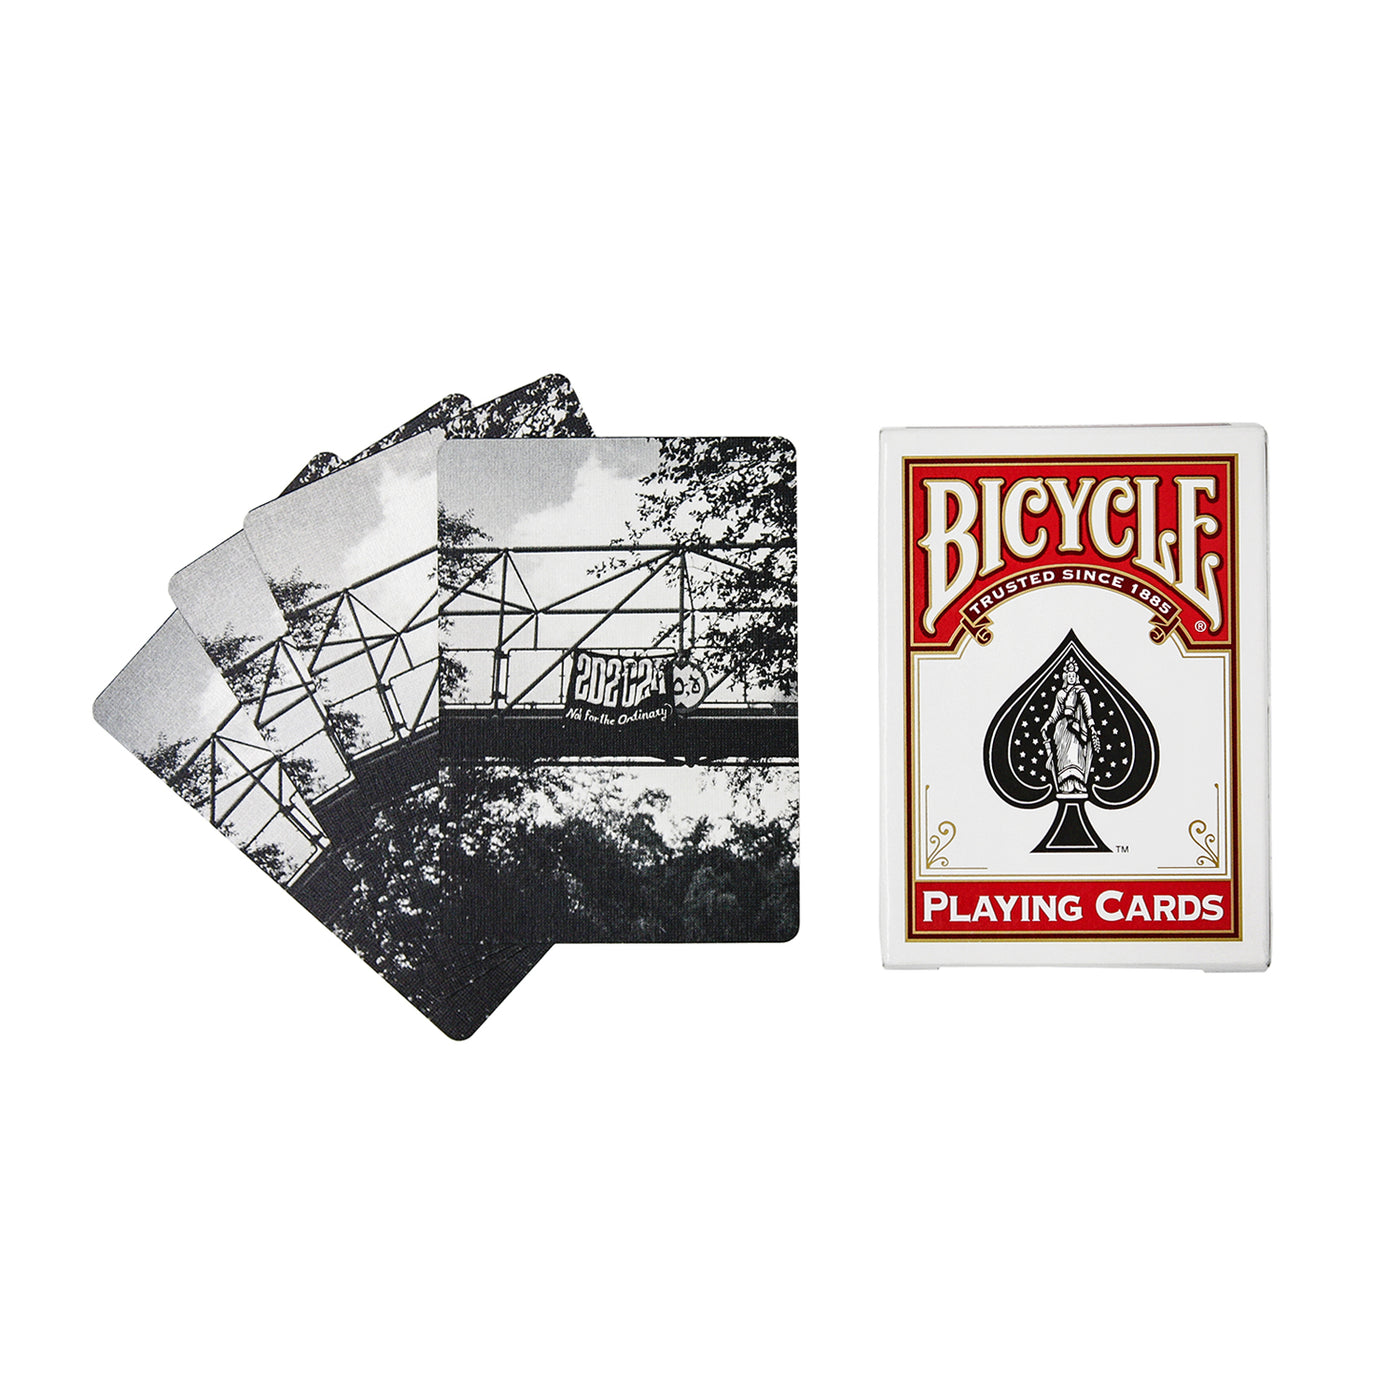 2D2C2M/BICYCLE® PLAYING CARDS